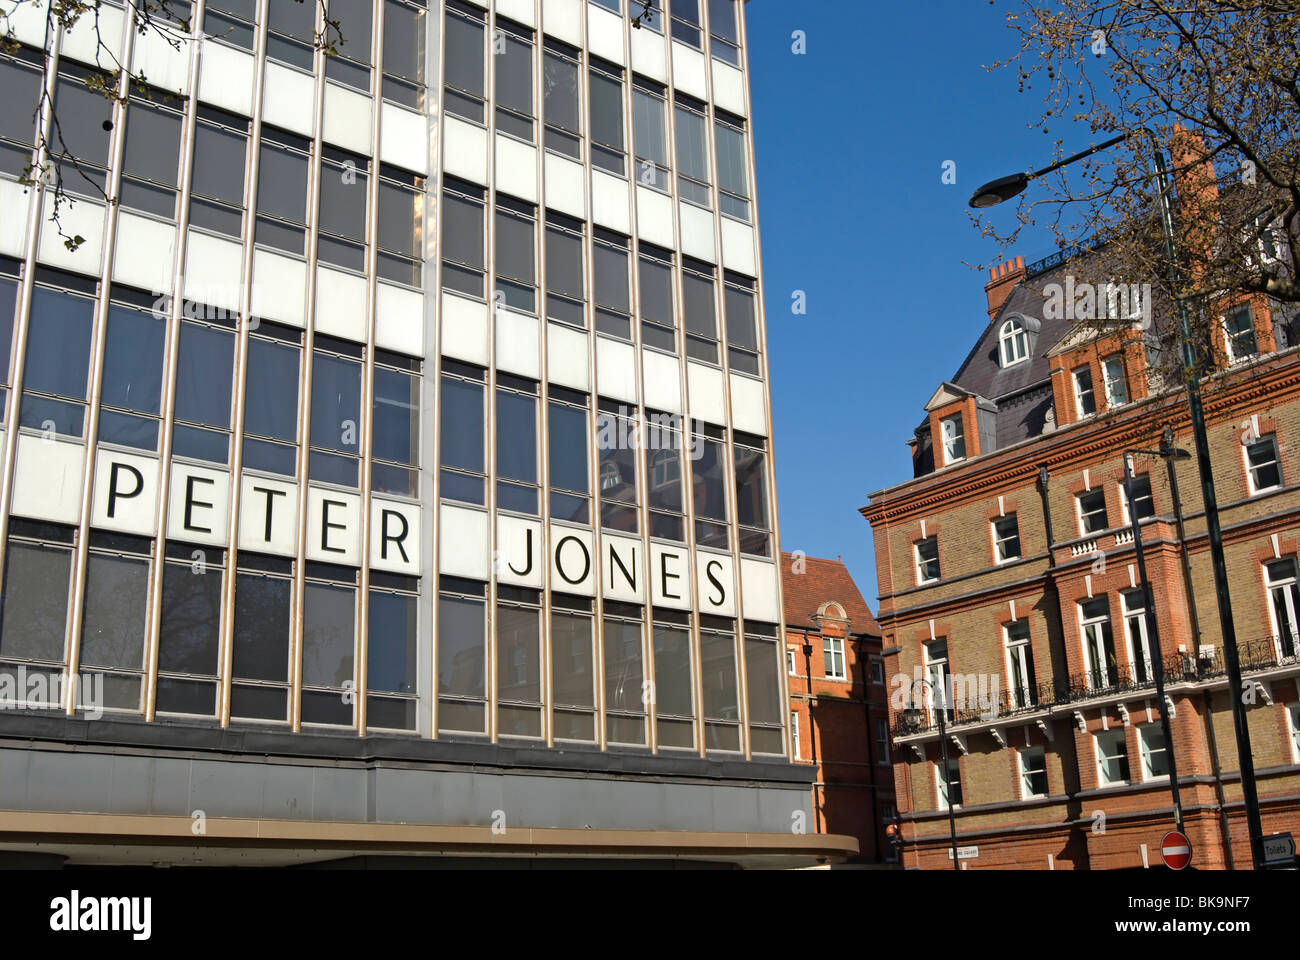 Peter jones department store